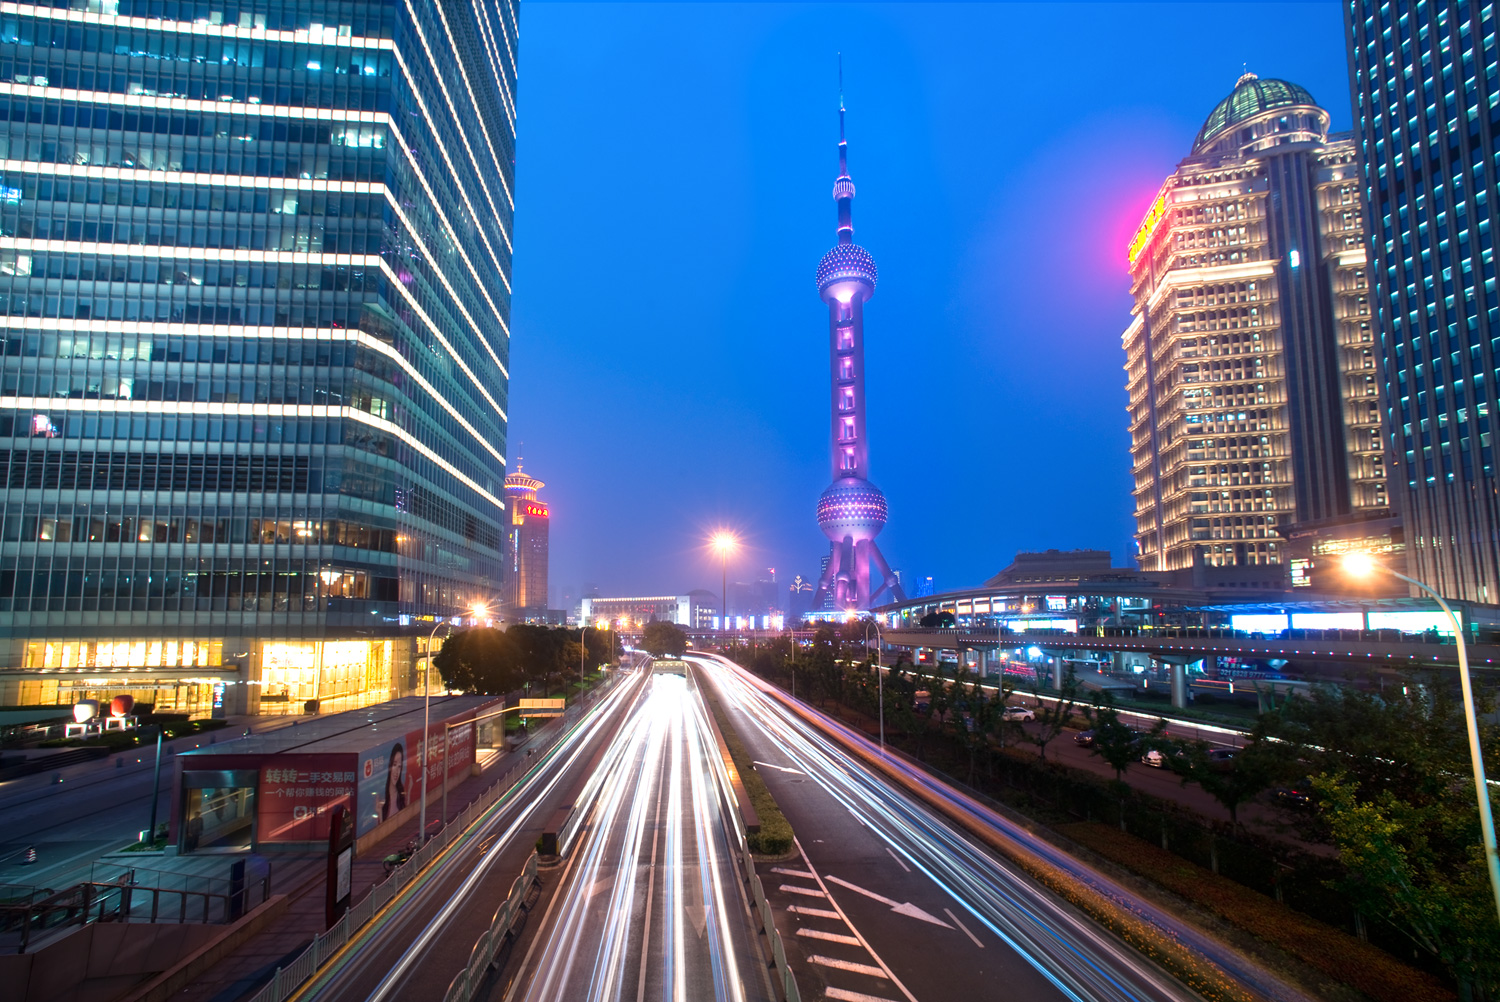 Shanghai skyline - Using Neutral Density Filters for Cityscape Photography at Blue Hour